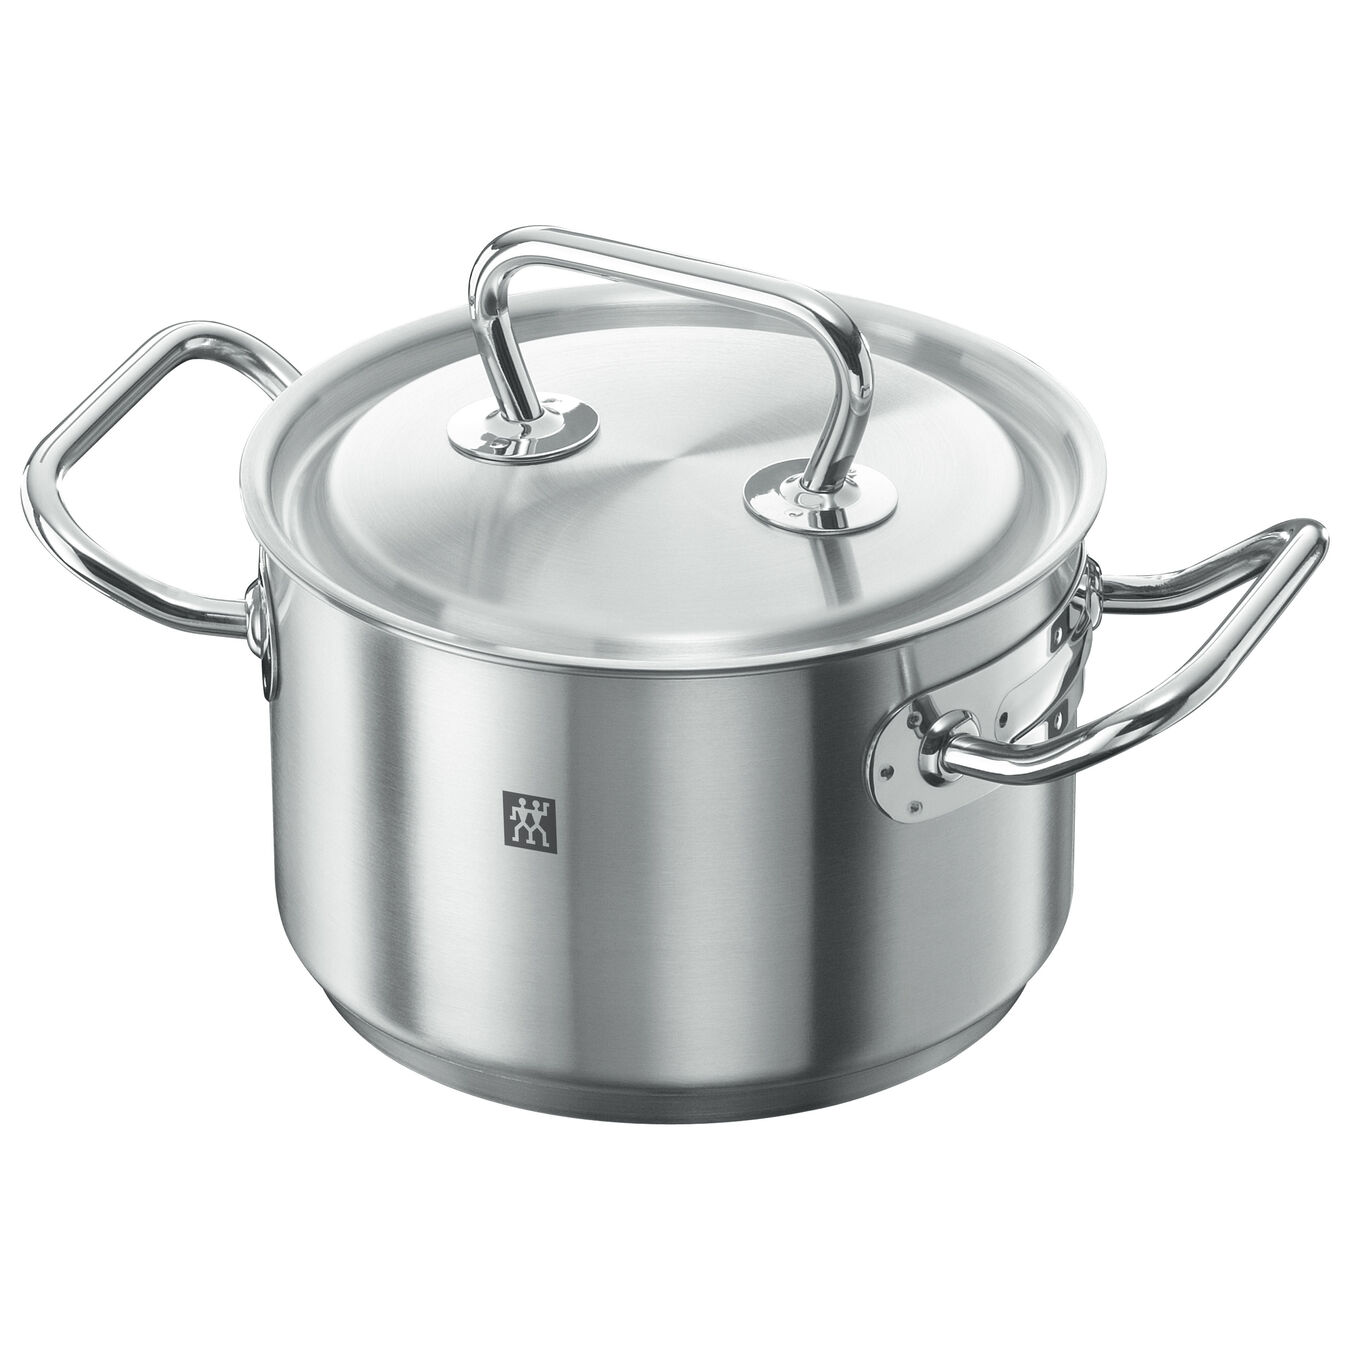 12 Piece 18/10 Stainless Steel Cookware set,,large 3